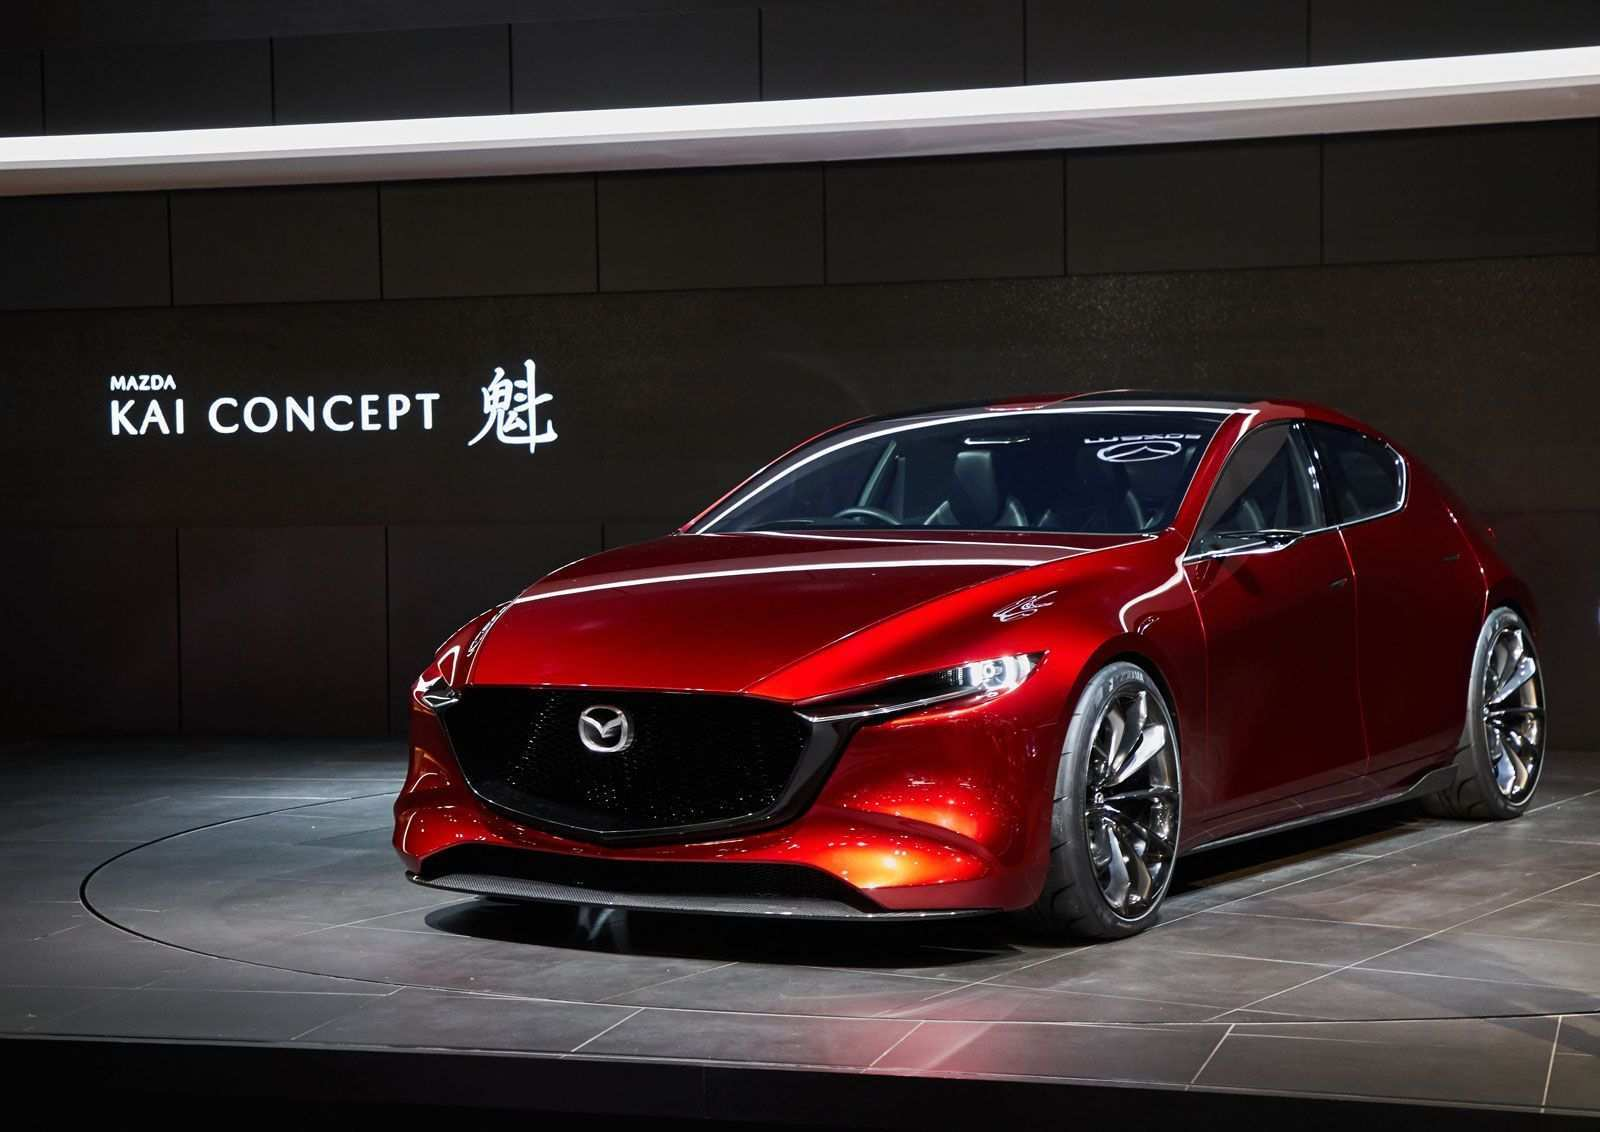 31 All New Mazda 3 2019 Specs Images for Mazda 3 2019 Specs